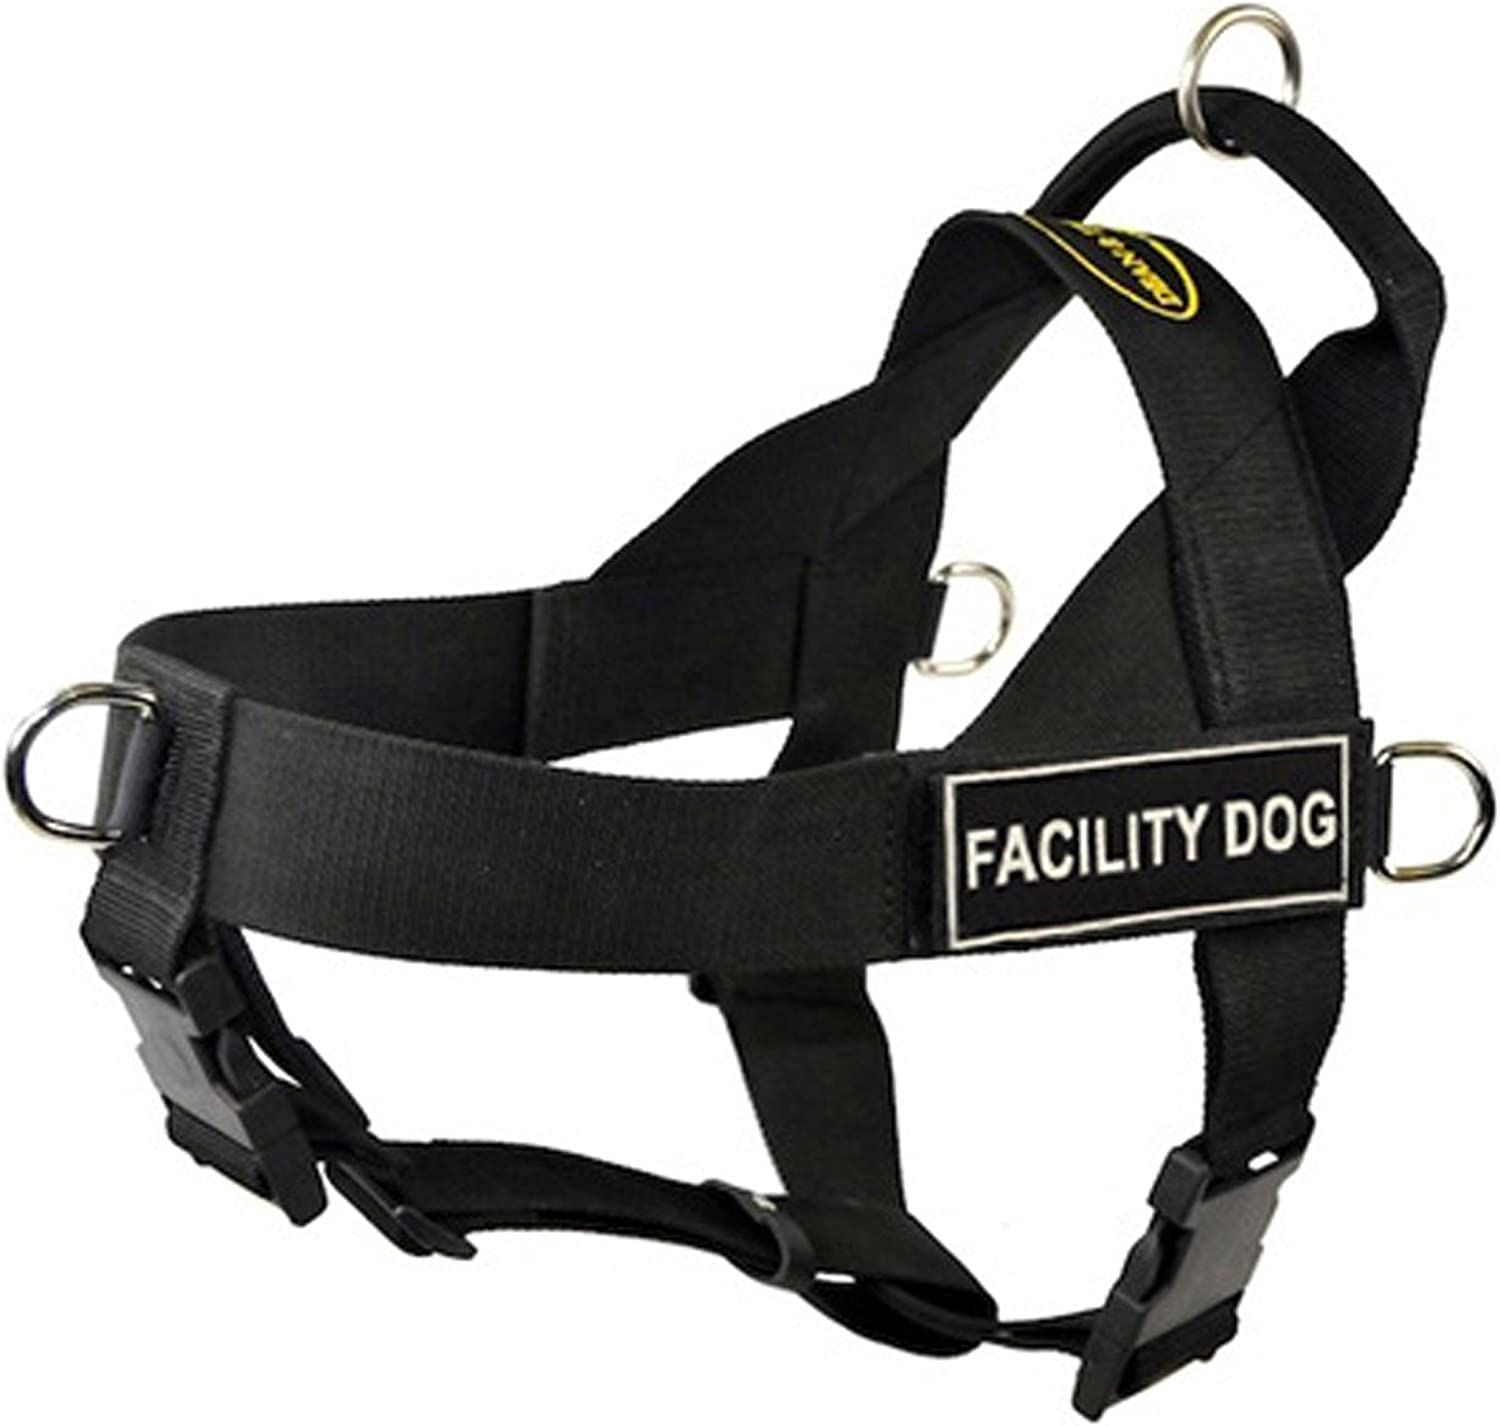 DT Universal No Pull Dog Harness, Facility Dog, Black, Small  Fits Girth Size  60cm to 70cm